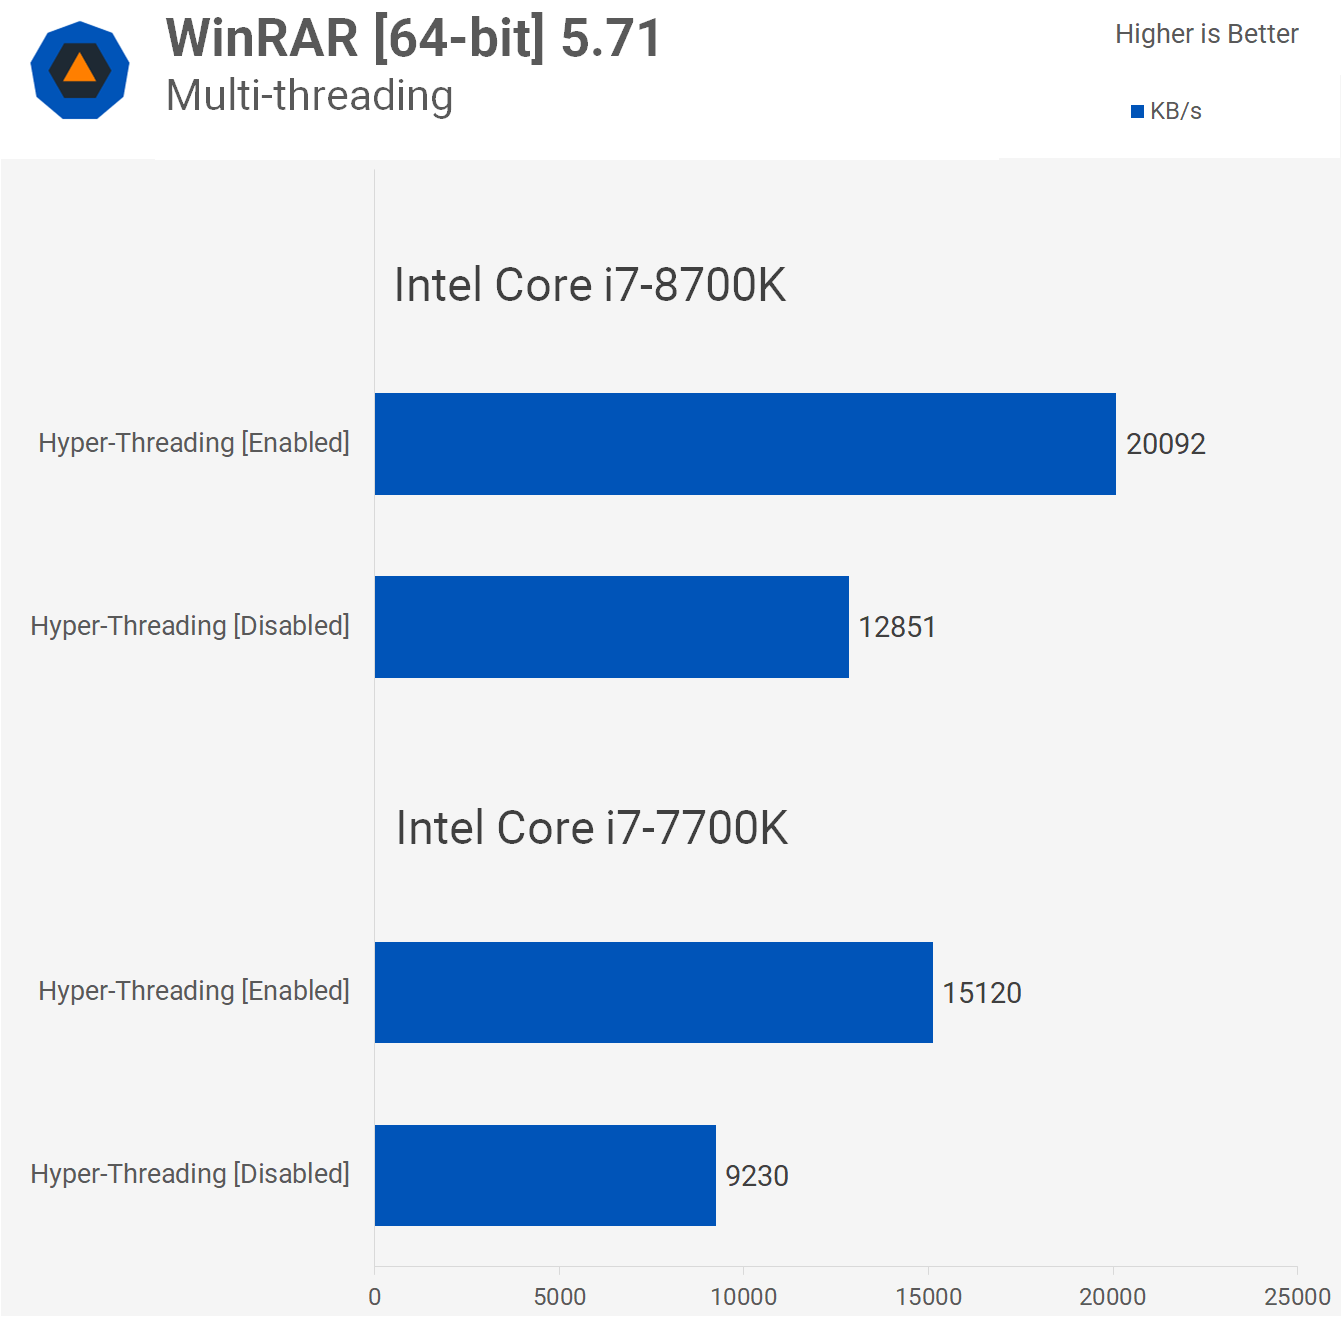 How Screwed is Intel without Hyper-Threading? - TechSpot